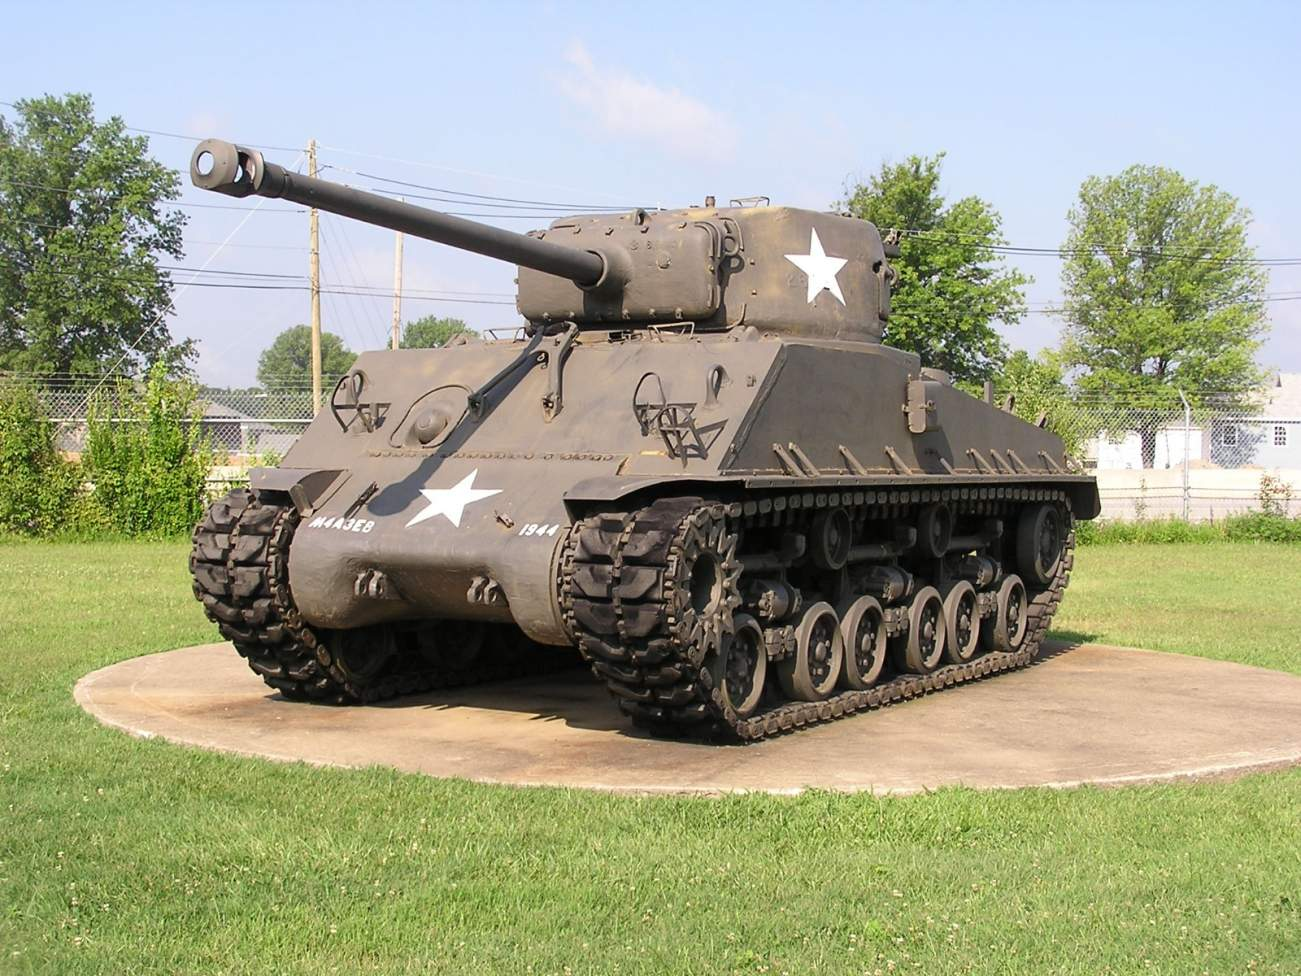 America's Sherman Tank: The Best World War II Killer, Or Just What Was Available?